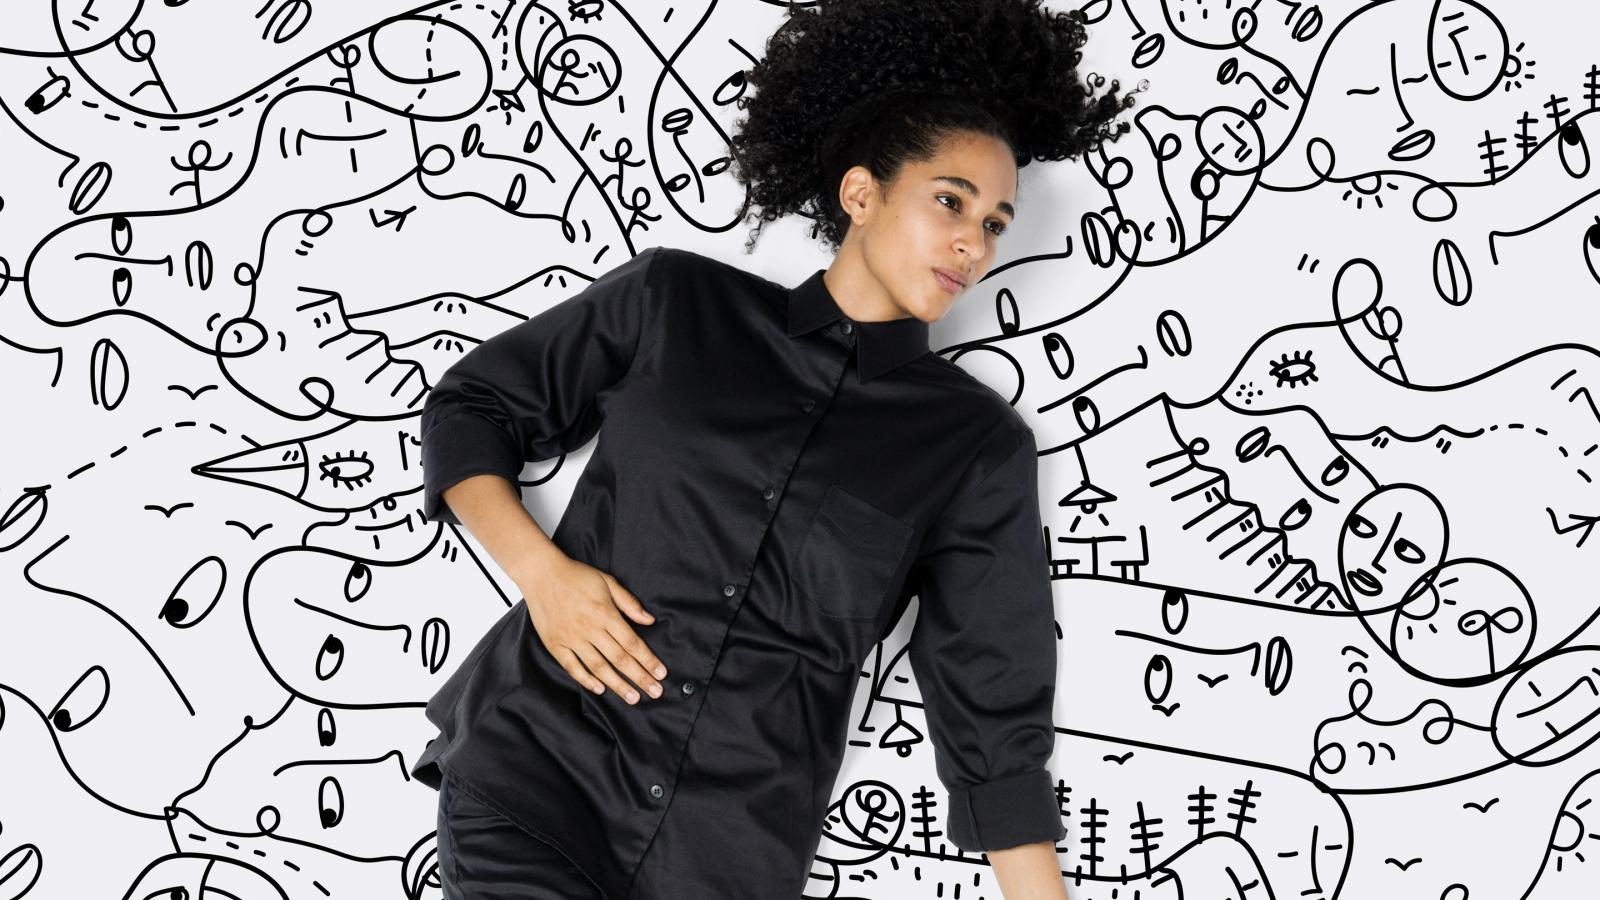 Interaction Design & Art Direction: Shantell Martin